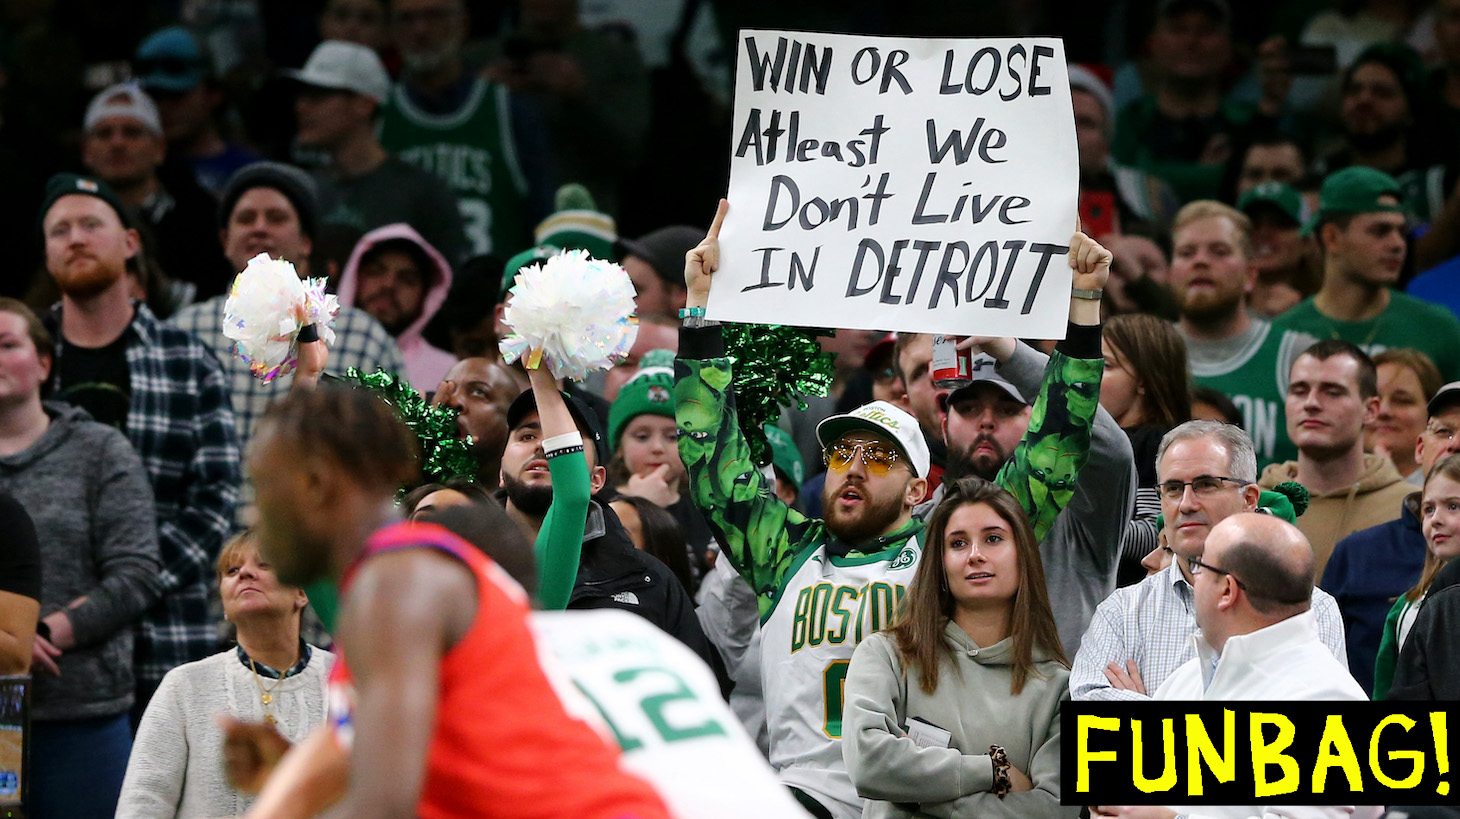 BOSTON, MASSACHUSETTS - DECEMBER 20: A Boston Celtics fan holds a sign during the game against the Detroit Pistons at TD Garden on December 20, 2019 in Boston, Massachusetts. The Celtics defeat the Pistons 114-93. NOTE TO USER: User expressly acknowledges and agrees that, by downloading and or using this photograph, User is consenting to the terms and conditions of the Getty Images License Agreement. (Photo by Maddie Meyer/Getty Images)